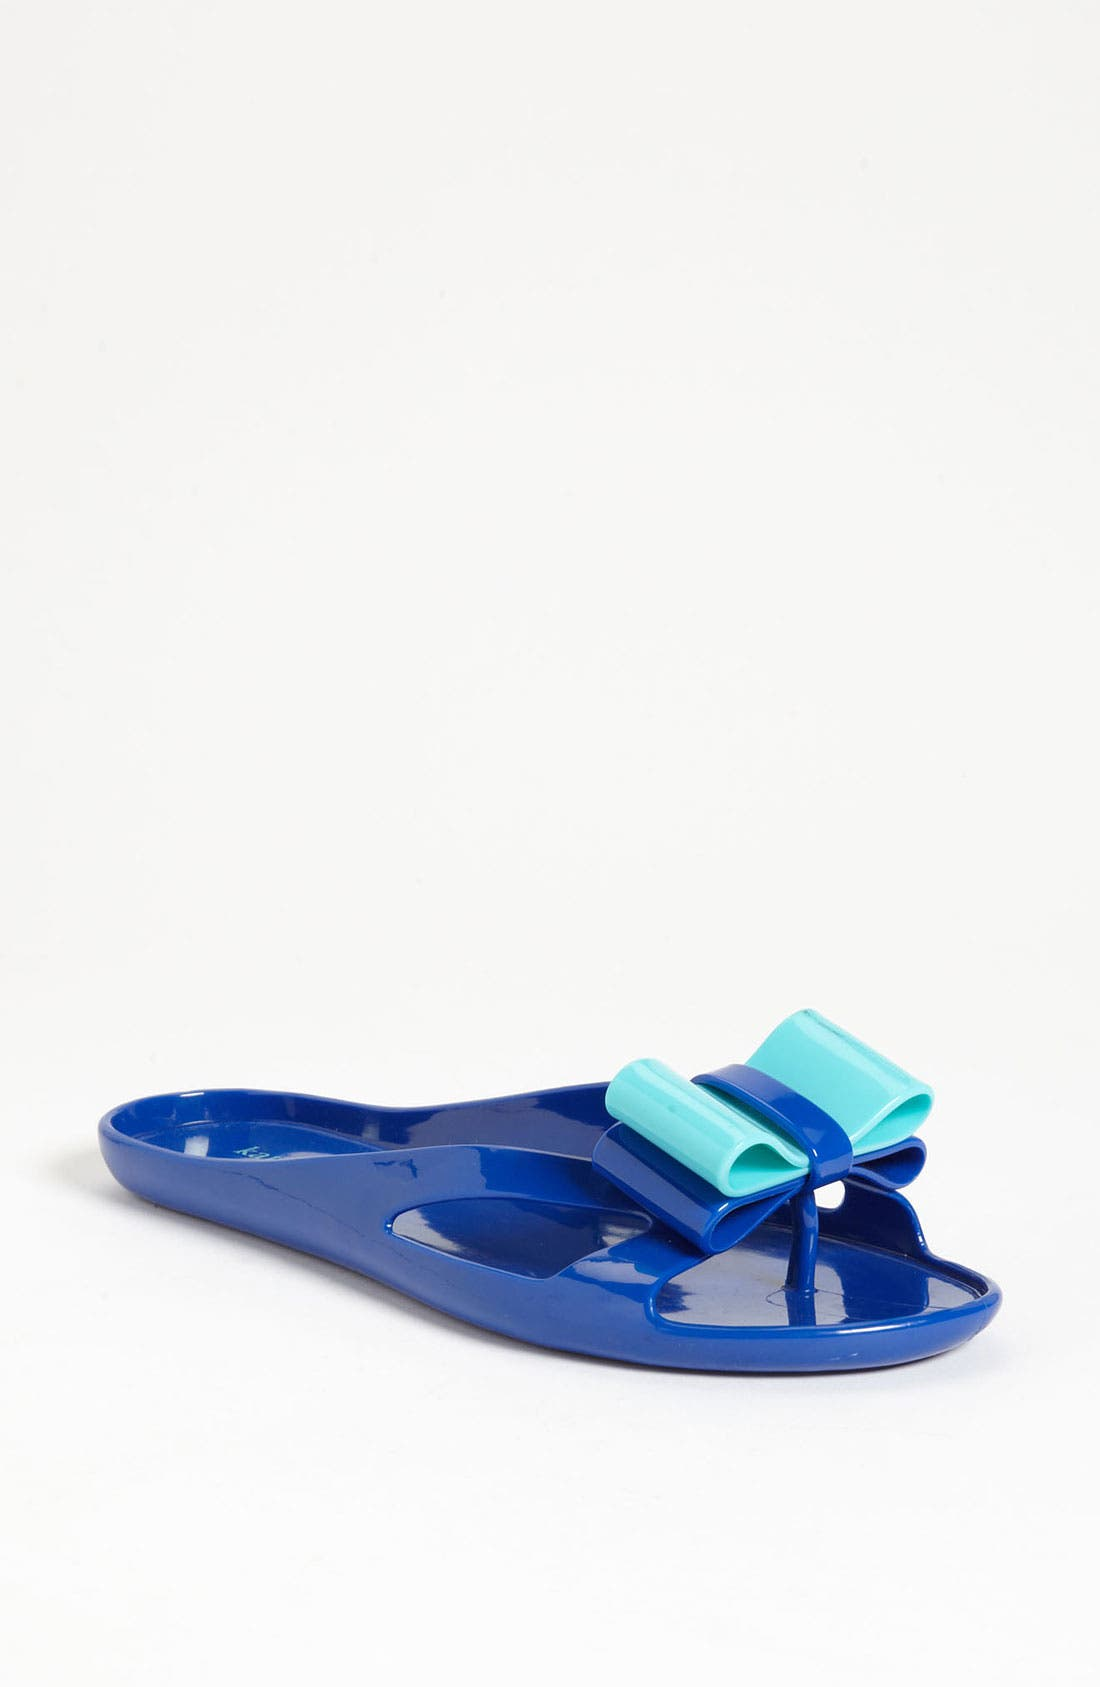 Alternate Image 1 Selected - kate spade new york 'bennie' sandal